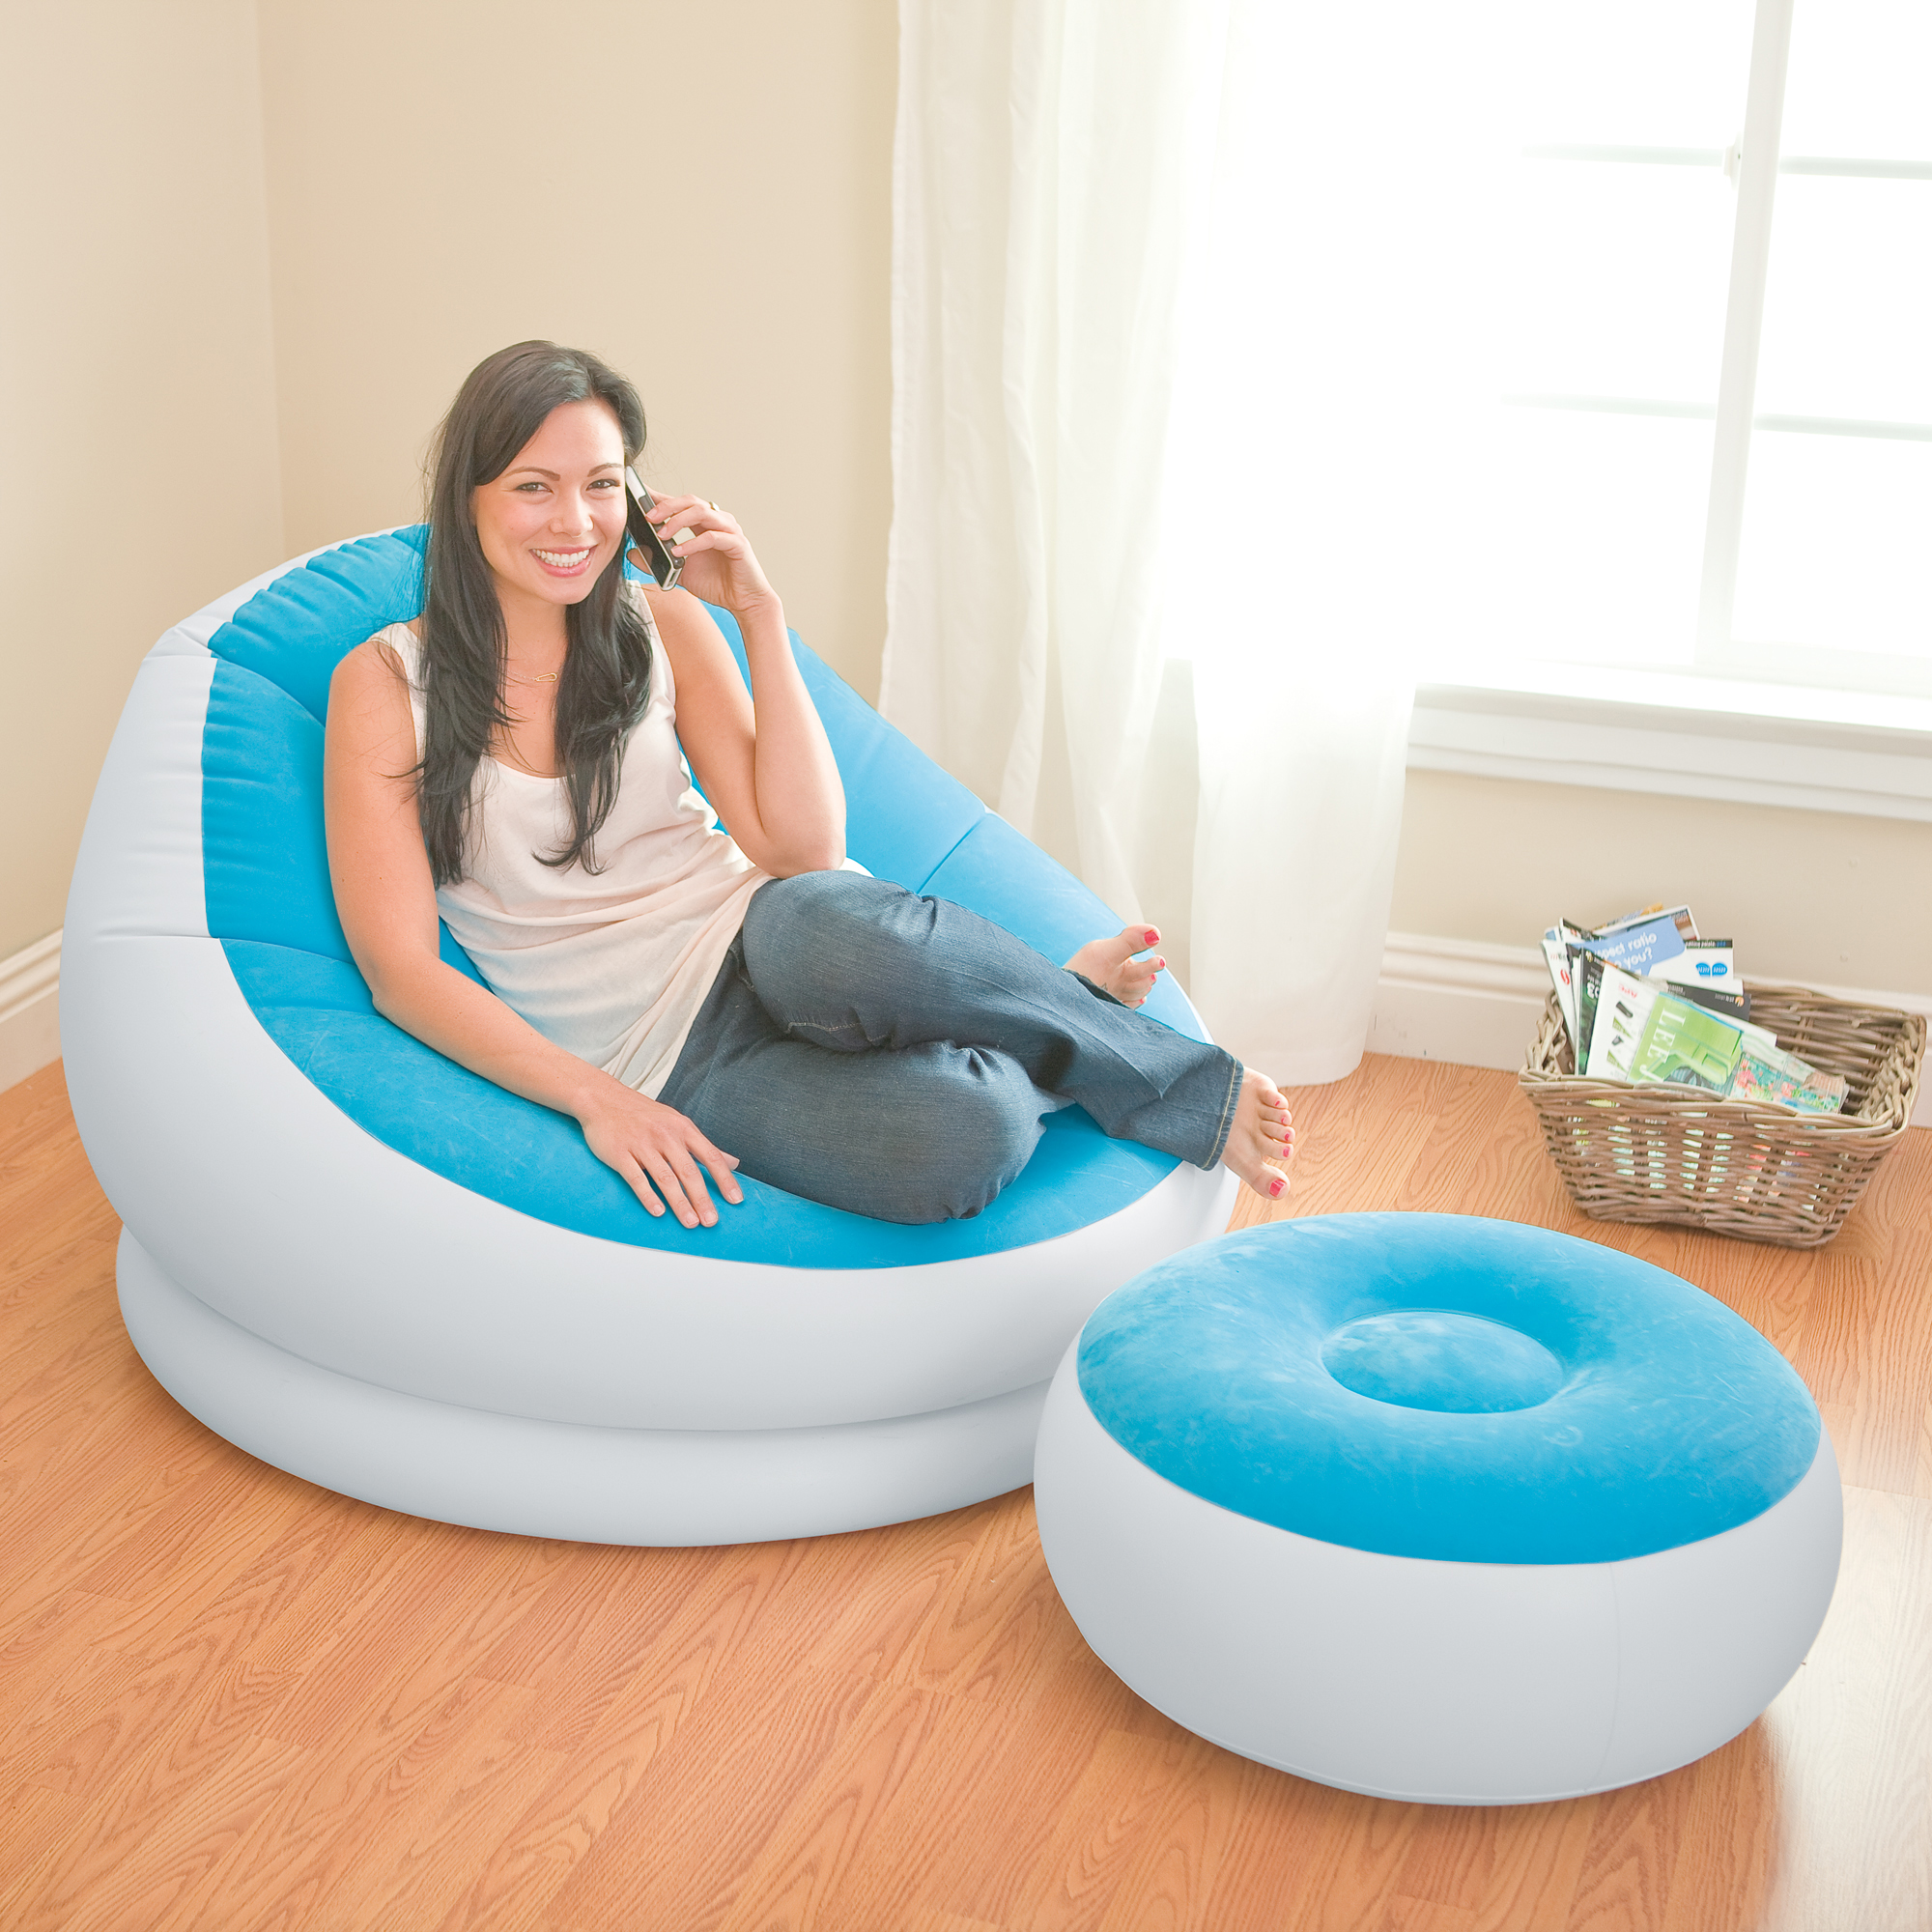 INTEX Inflatable Colorful Cafe Chaise Lounge Chair w/ Ottoman - Blue   10E